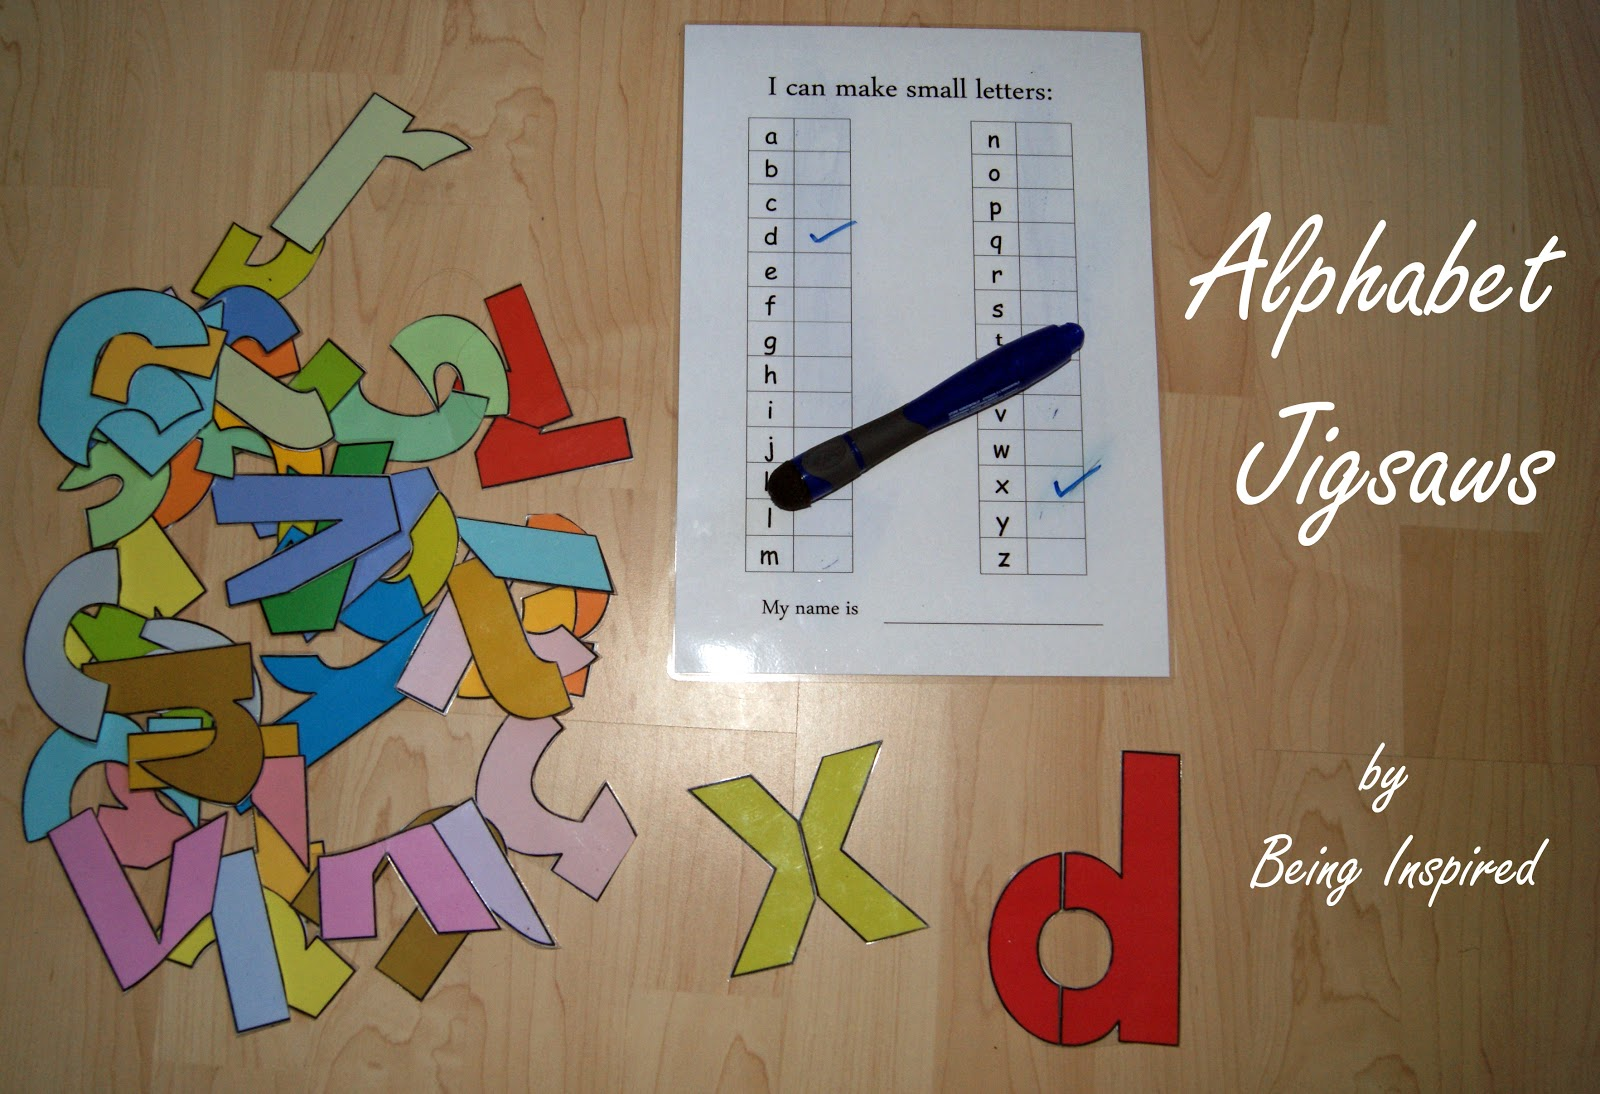 being inspired alphabet jigsaw puzzles